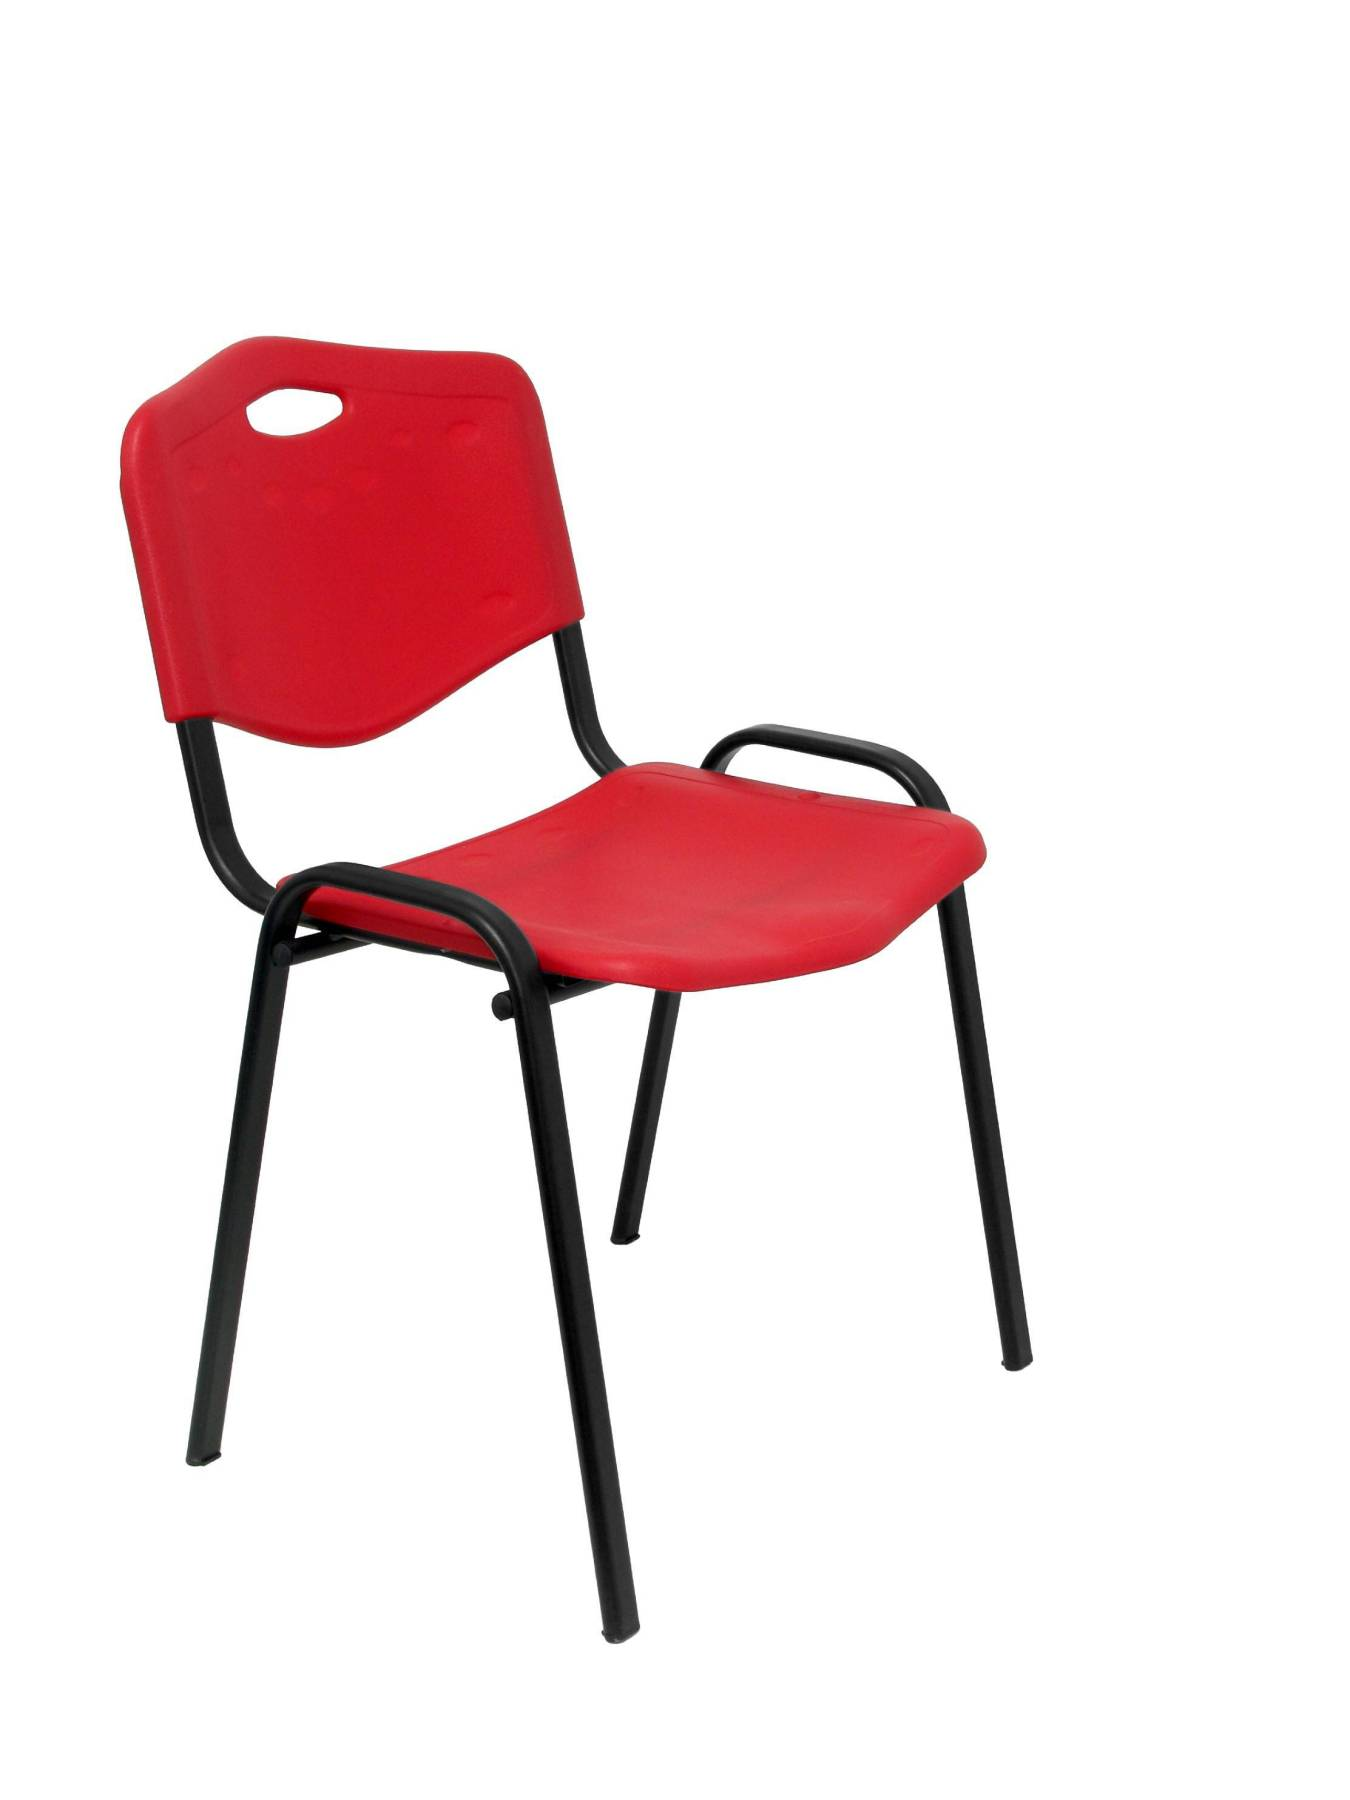 Visitor Chair Desk Ergonomic, Stackable, Multipurpose And Structure In Black Color Up Seat And Backstop PVC Red Color (WITH